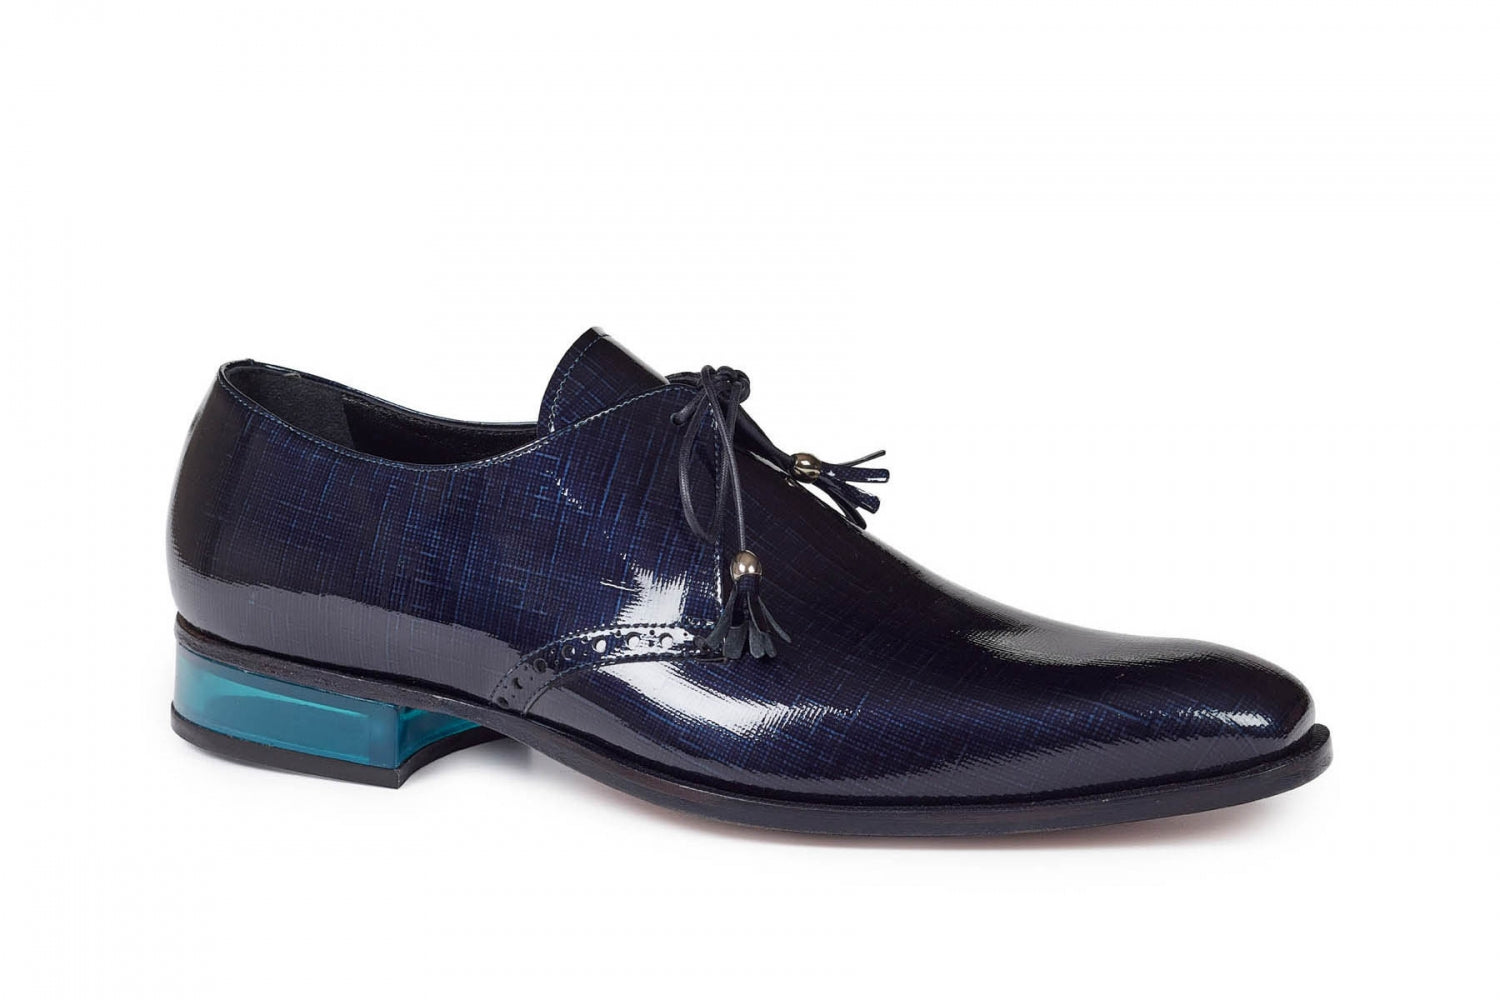 Mauri (4801) Blue Patent Leather shoe with Plexiglas Heel